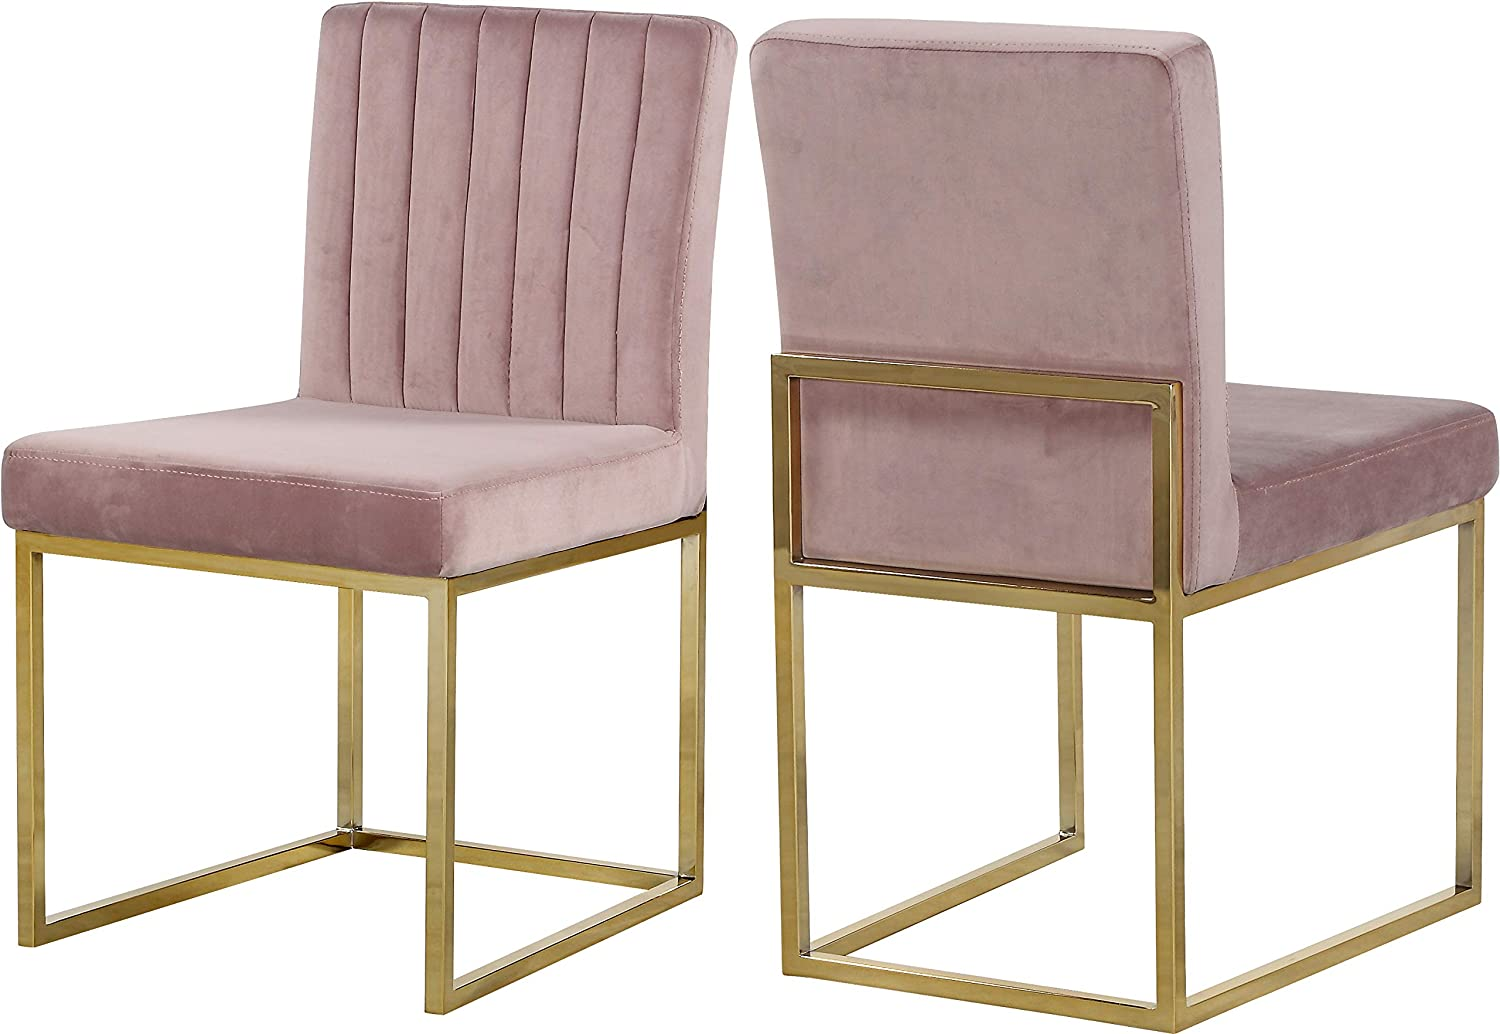 "Meridian Furniture Giselle Collection Modern | Contemporary Velvet Upholstered Dining Chair with Durable Metal Base, Set of 2, 18"" W x 22"" D x 32"" H, Pink"